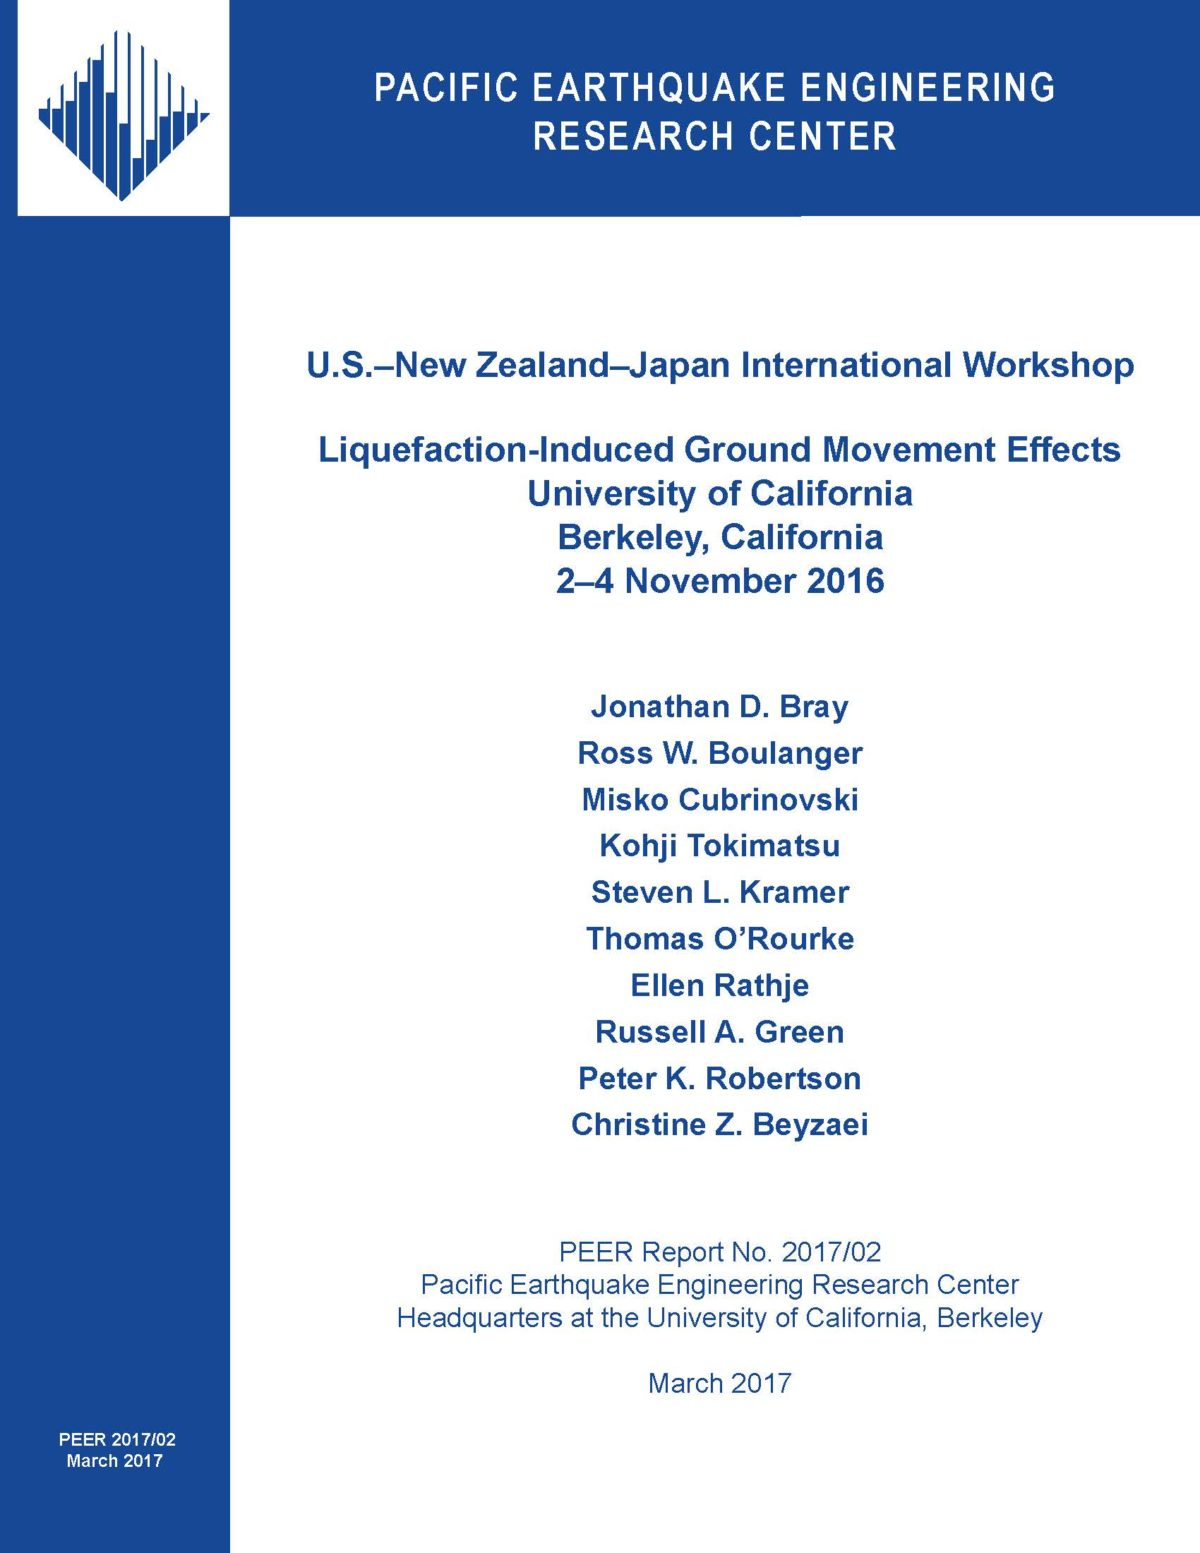 Liquefaction-induced ground movements effects